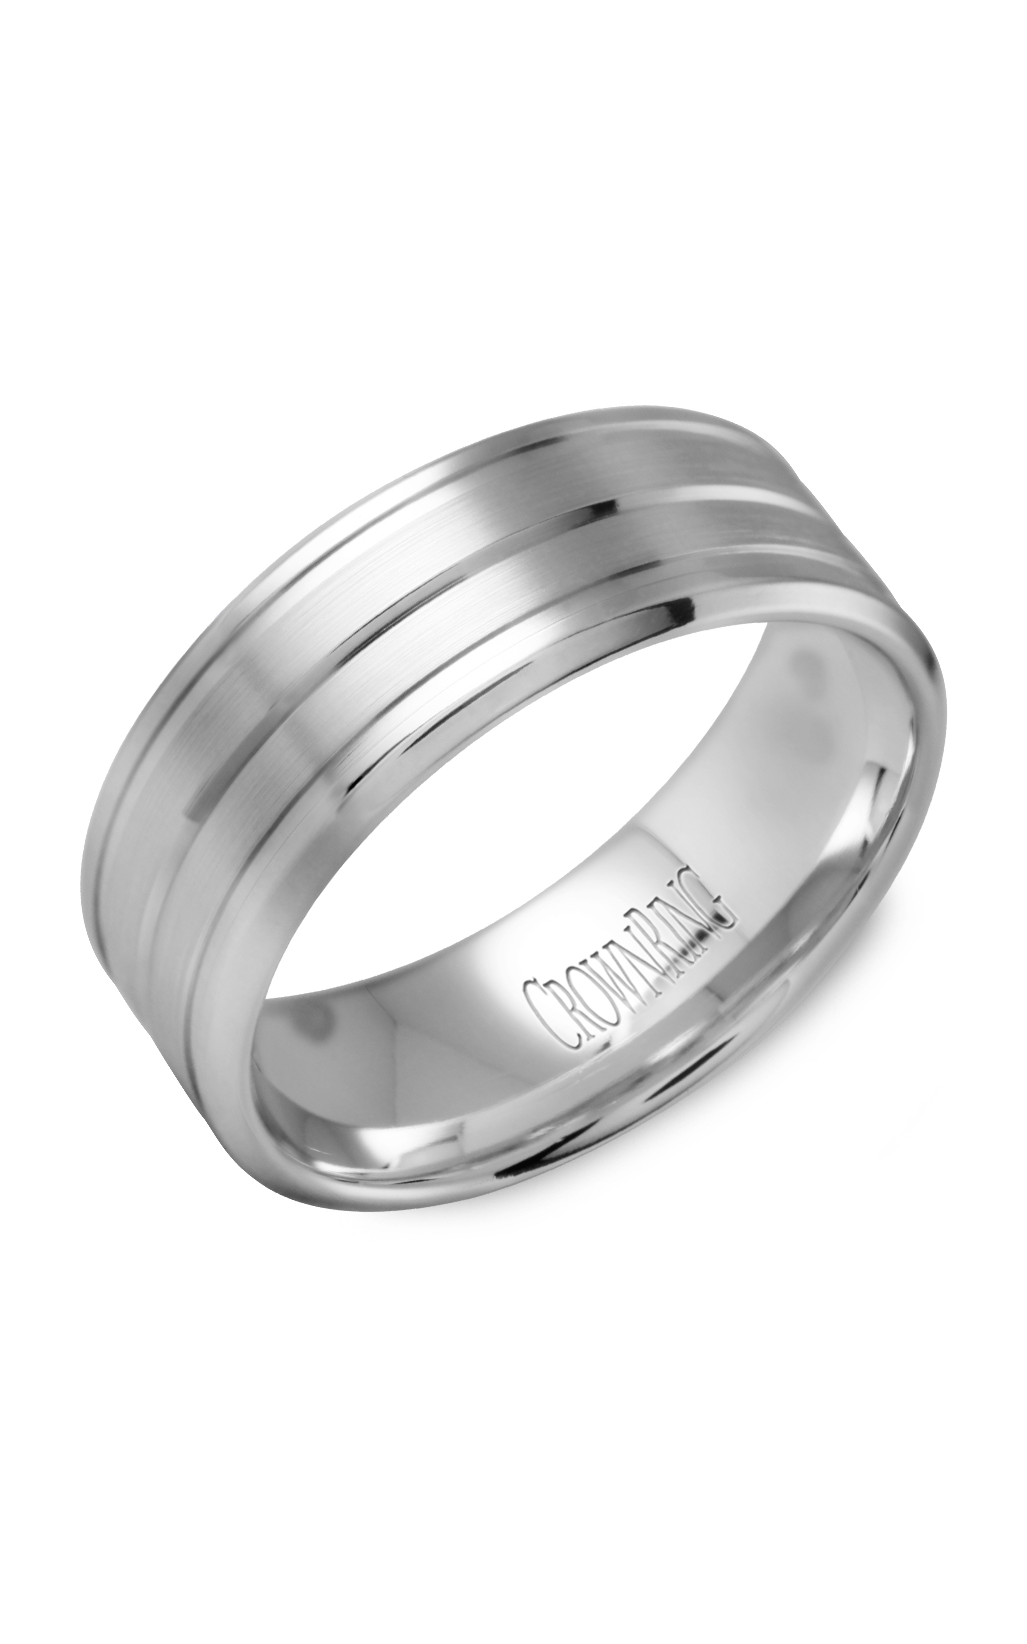 Crown Ring Men's Wedding Band WB-9504 product image